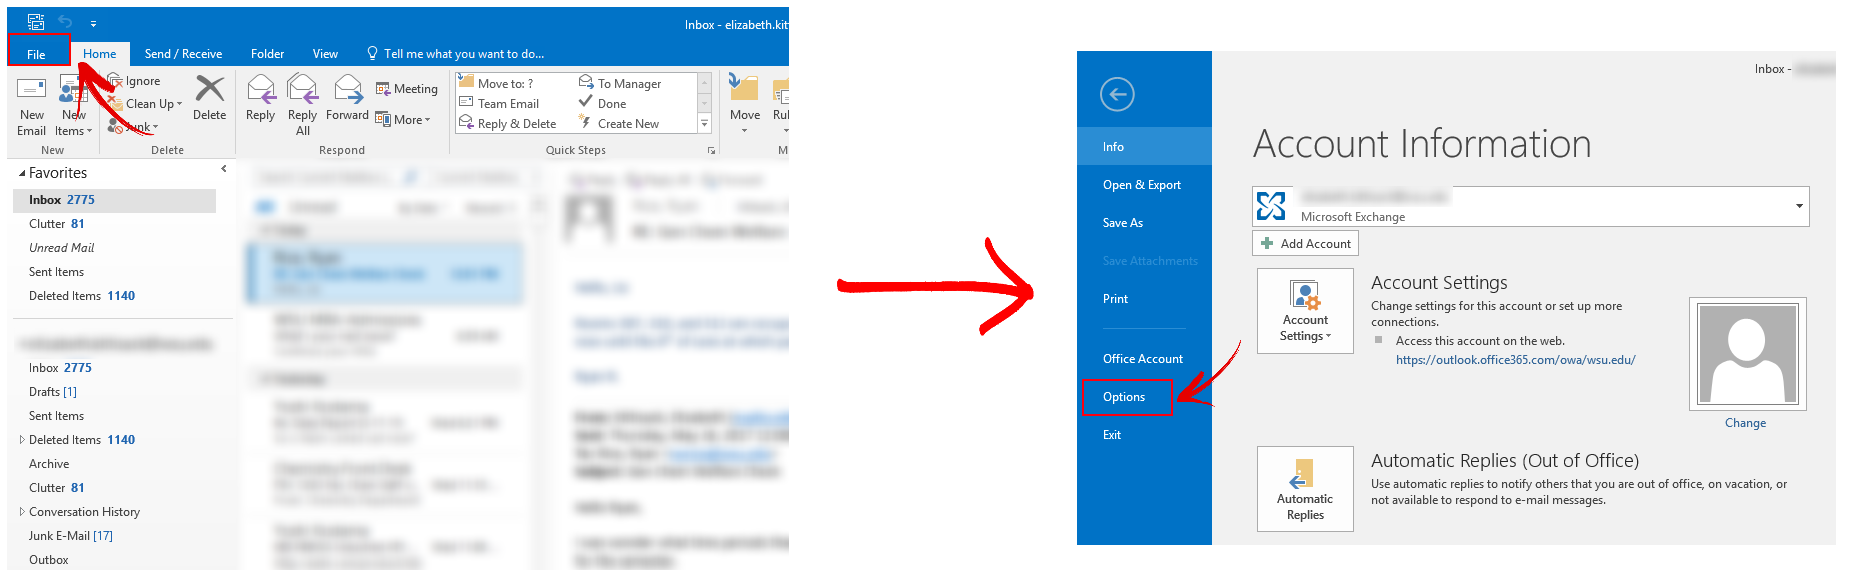 Outlook client